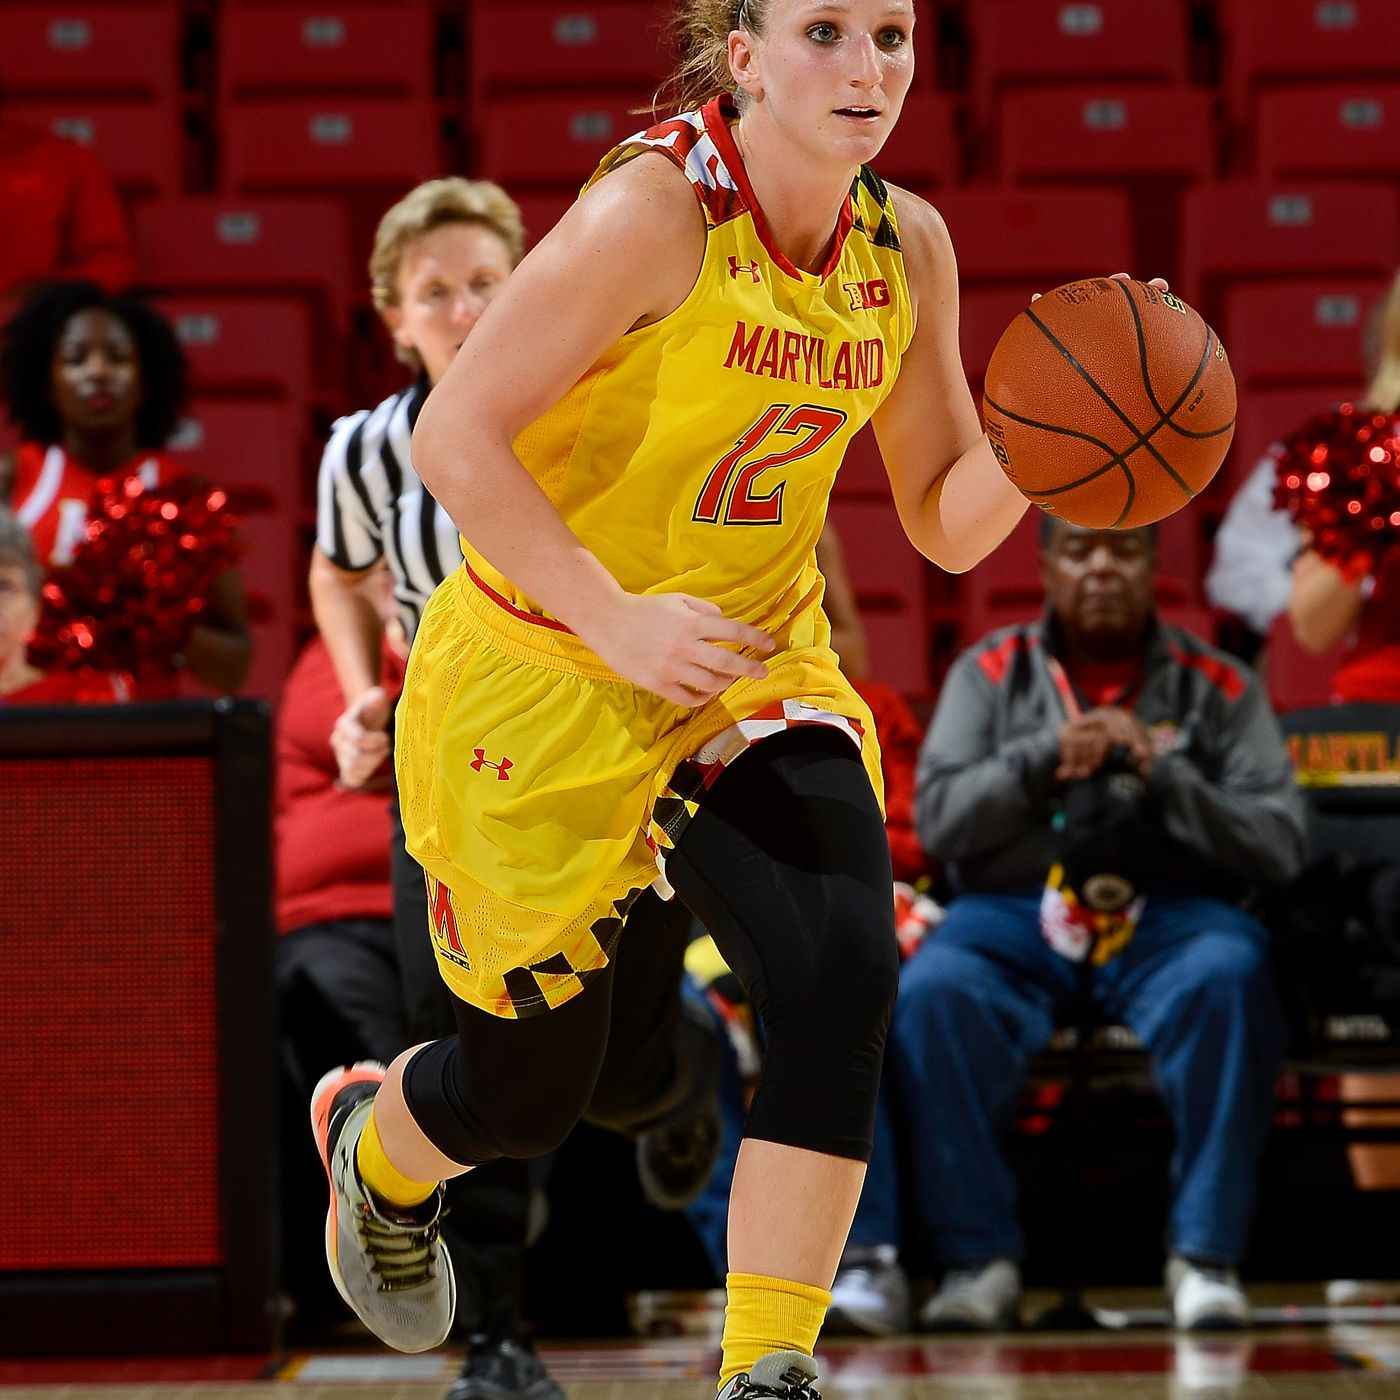 c5a2c483deef92 Maryland women s basketball vs. Northwestern preview - Testudo Times